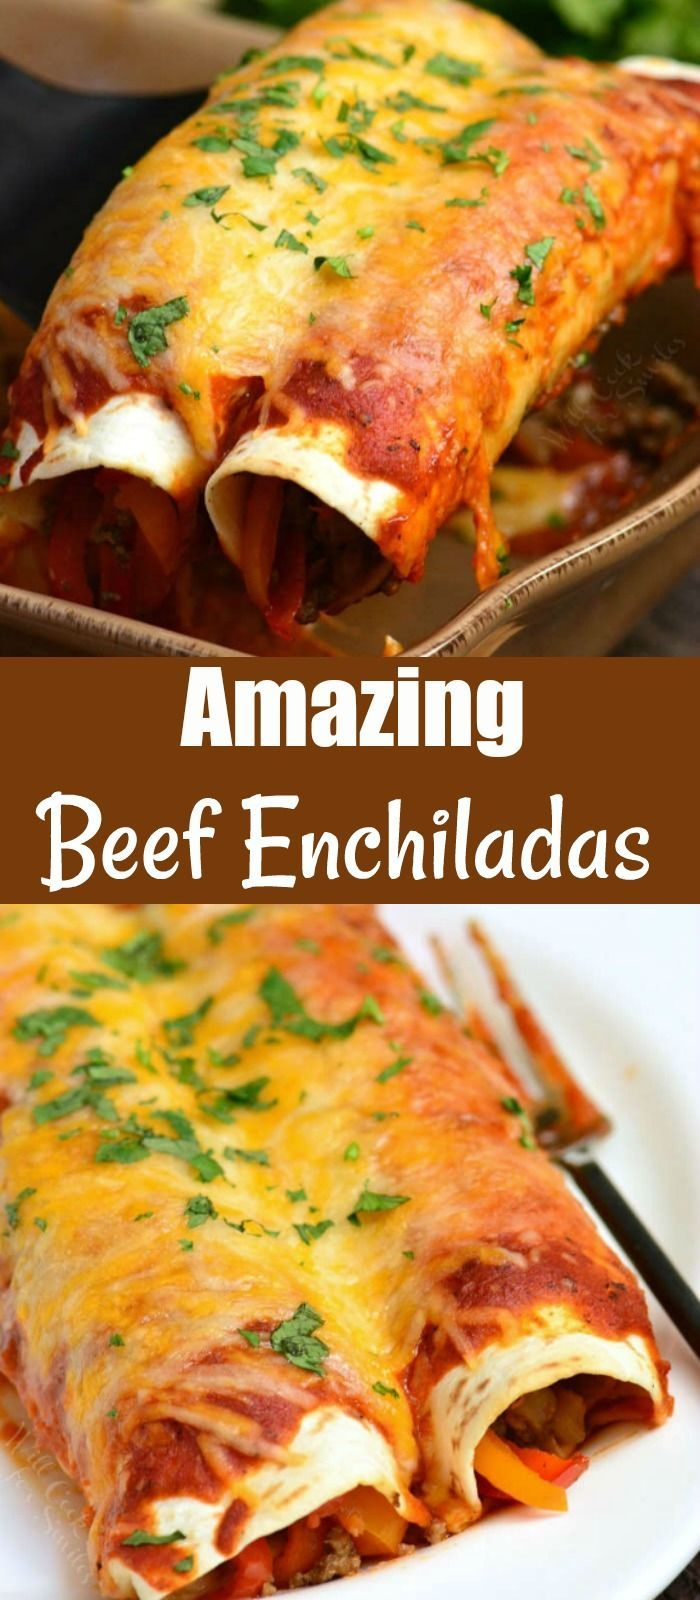 Beef Enchiladas In 2020 Mexican Food Recipes Enchiladas Beef Enchiladas Homemade Enchiladas